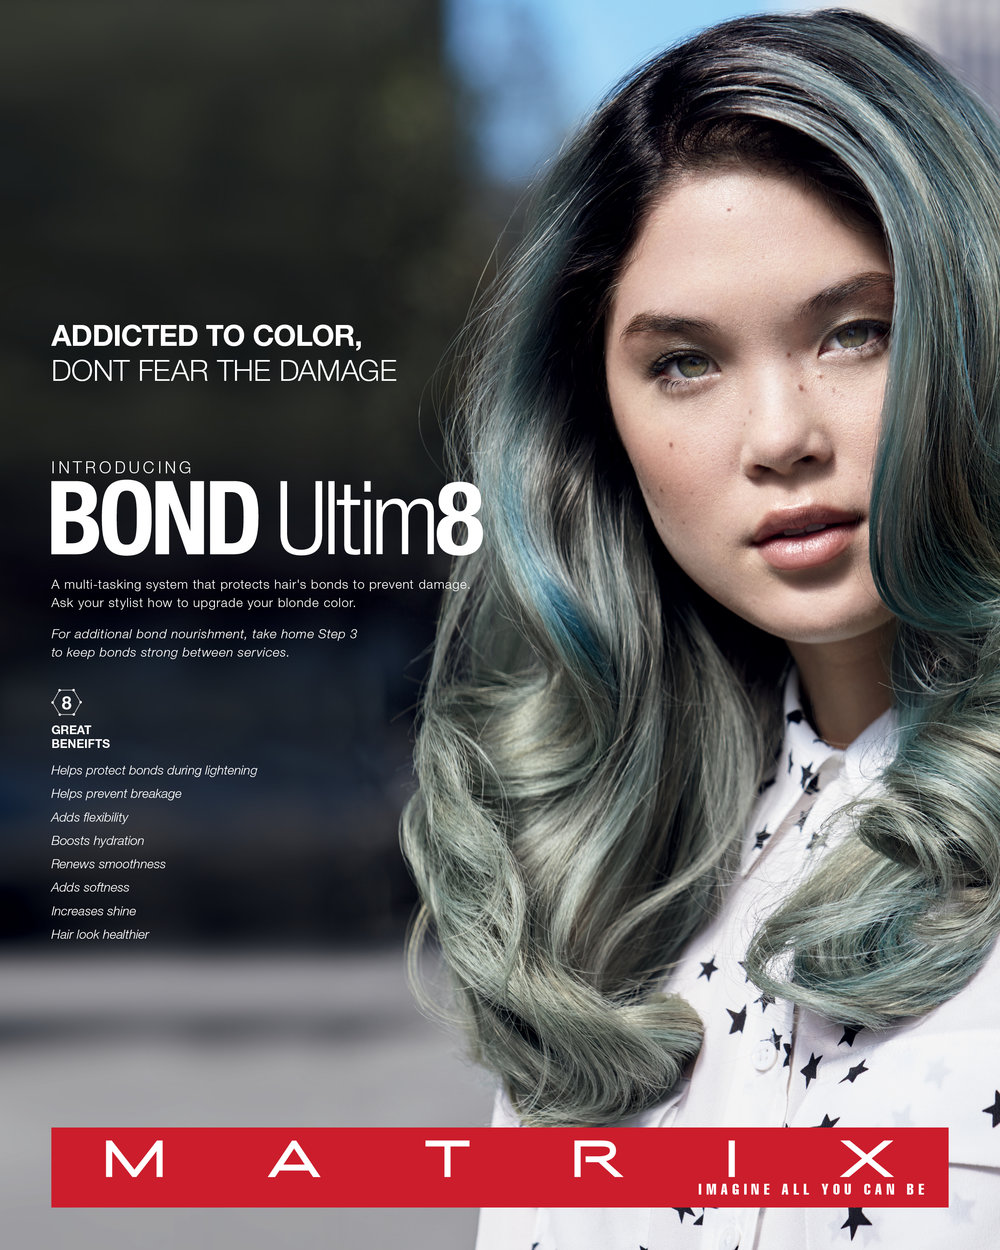 BOND_ULTIM8_SALON_POSTERS_BEAUTY3.jpg